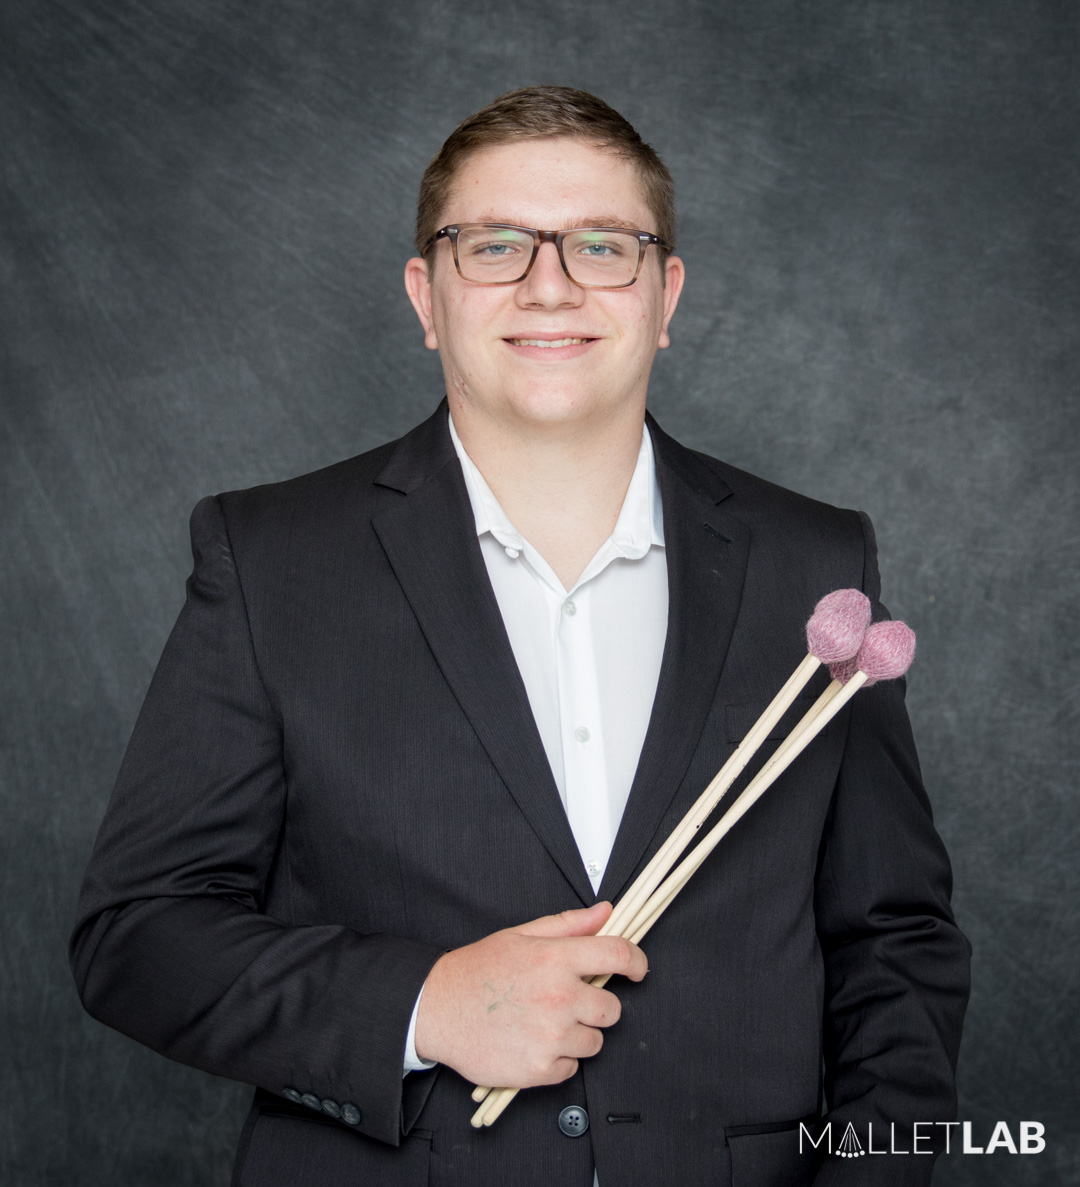 Tim Mcnulty | 2018 Member - Malletlab was an experience worth a lifetime that changed me as a musician and just as equally as a person. When you put 11 of the best percussion musicians, educators, and composers with 47 of the best students in the world, something magical happens. I came to malletlab wanting new perspectives on mallet percussion and I got that and so much more. I can't express how life changing the malletlab experience has been for me. I now have a family for life.